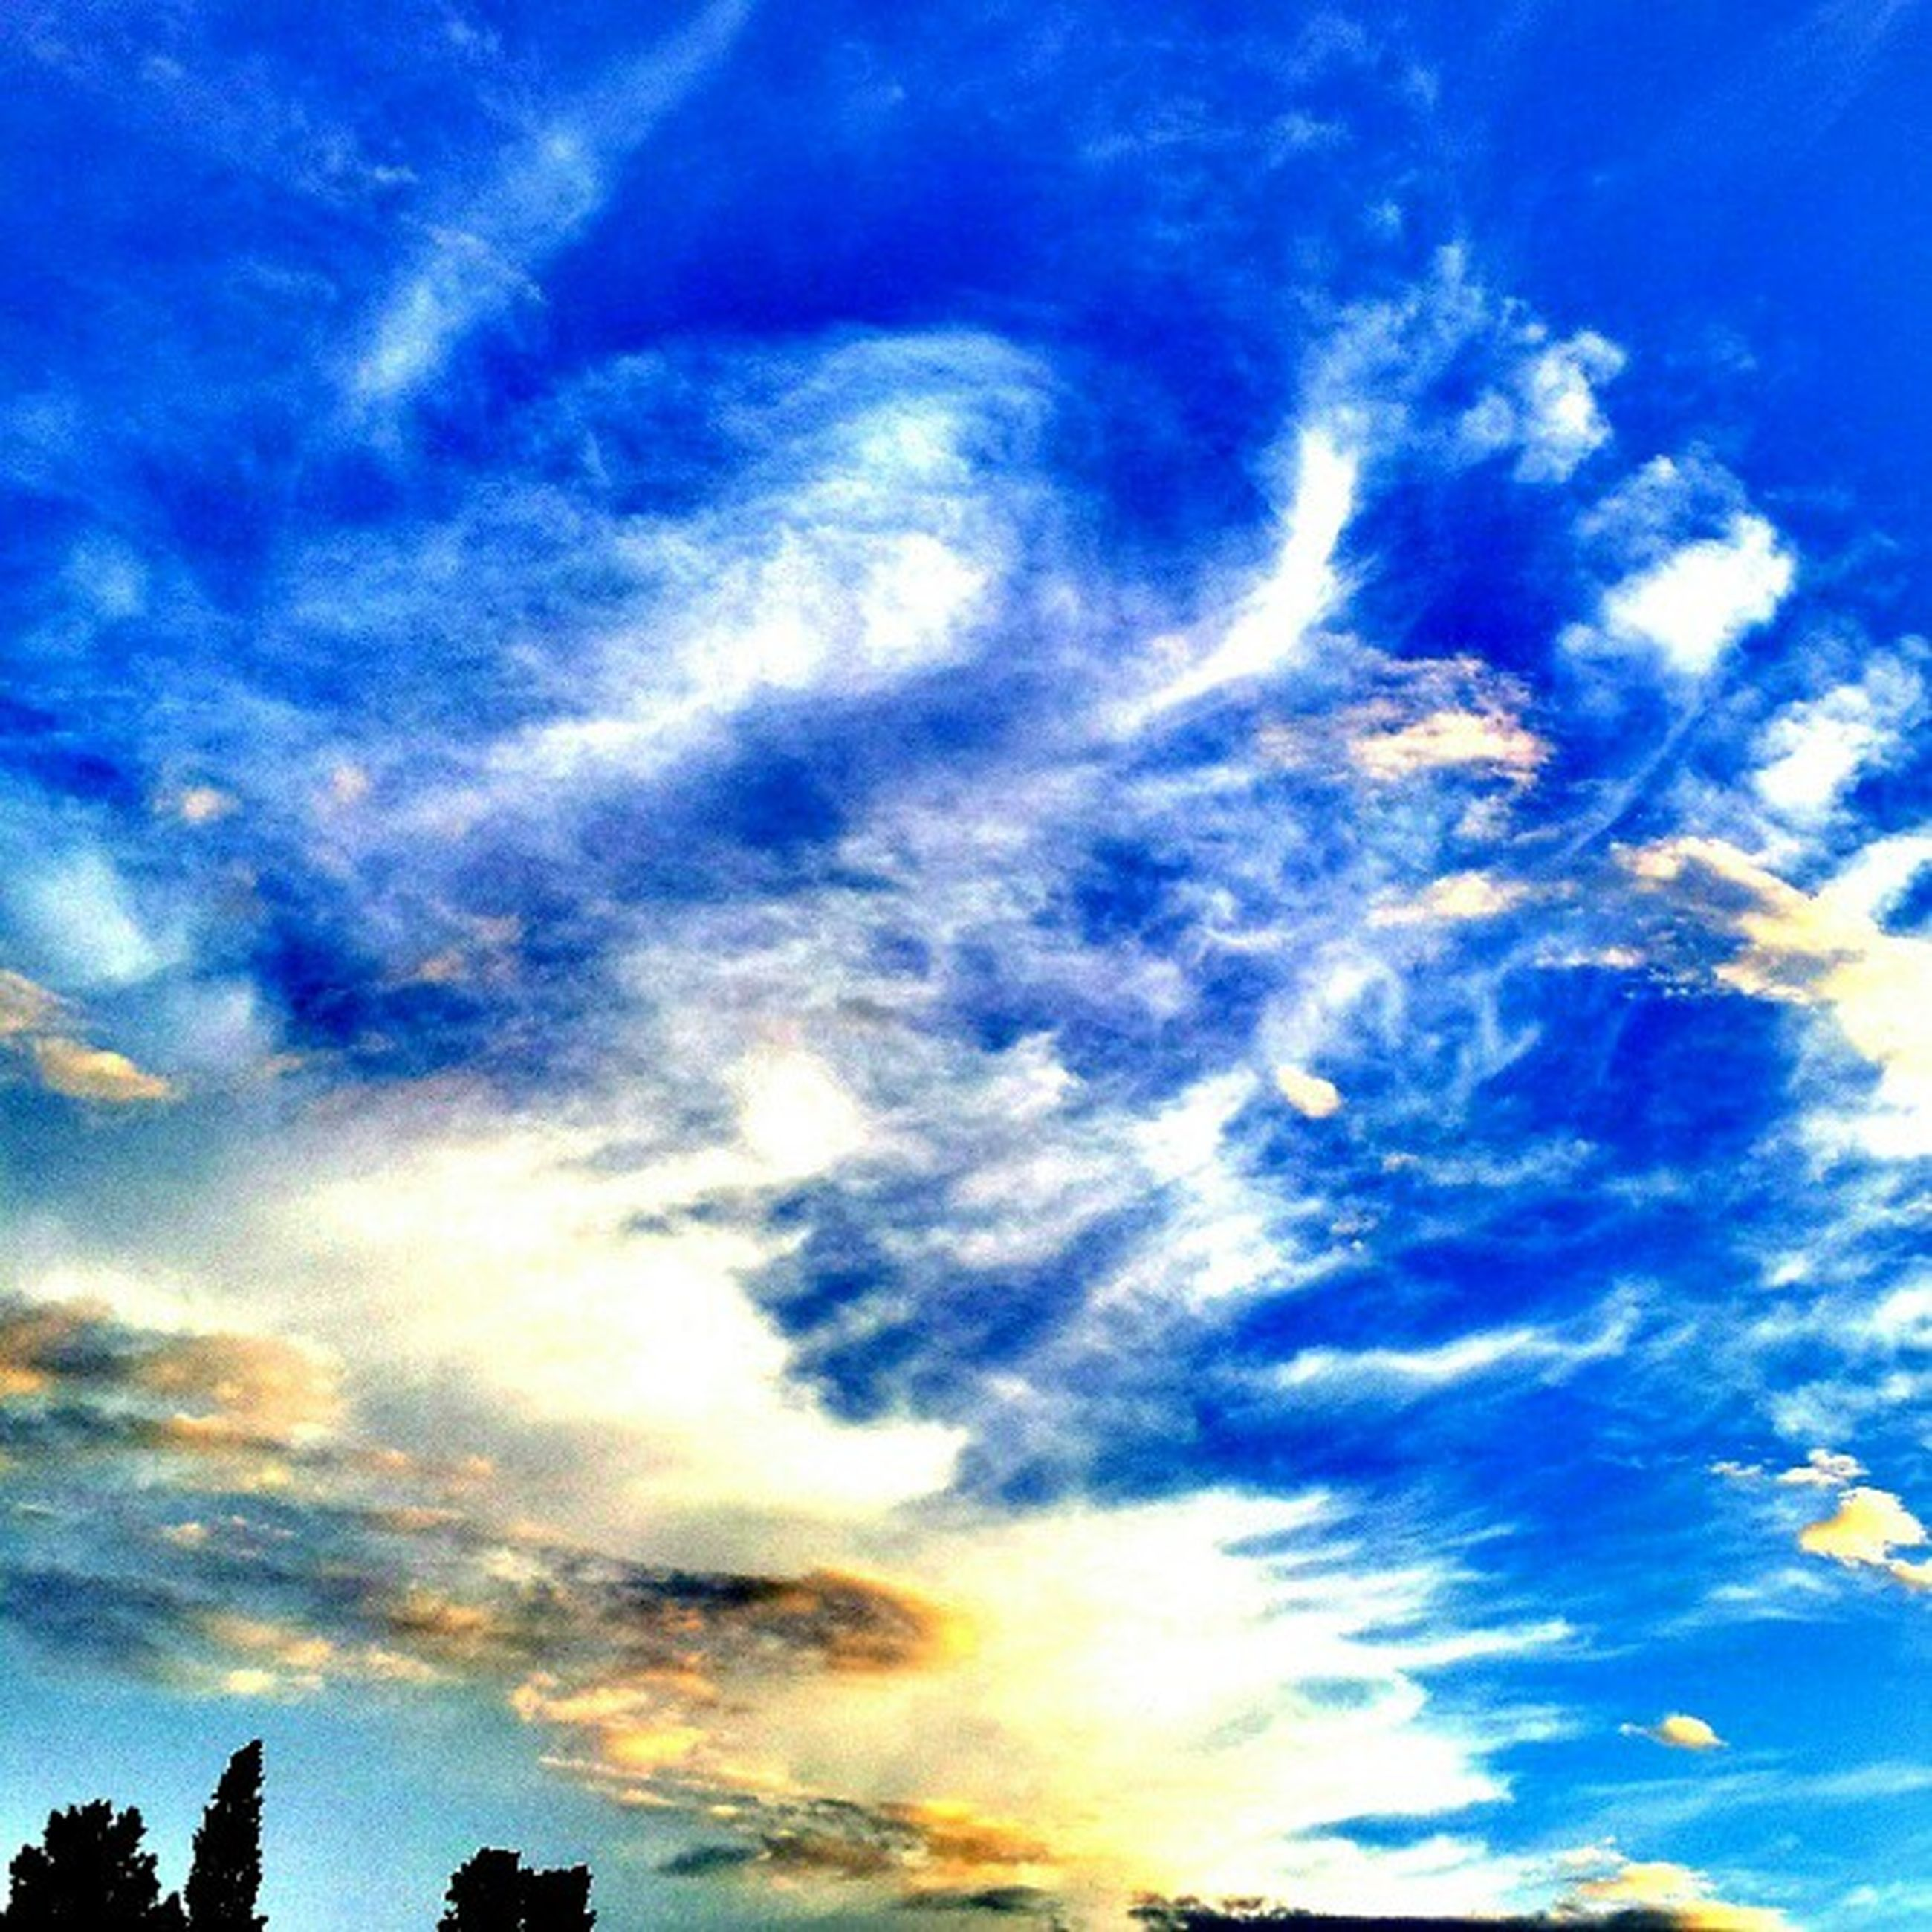 sky, blue, low angle view, cloud - sky, beauty in nature, tranquility, scenics, cloud, nature, tranquil scene, cloudy, cloudscape, sunset, silhouette, idyllic, outdoors, sunlight, no people, backgrounds, majestic